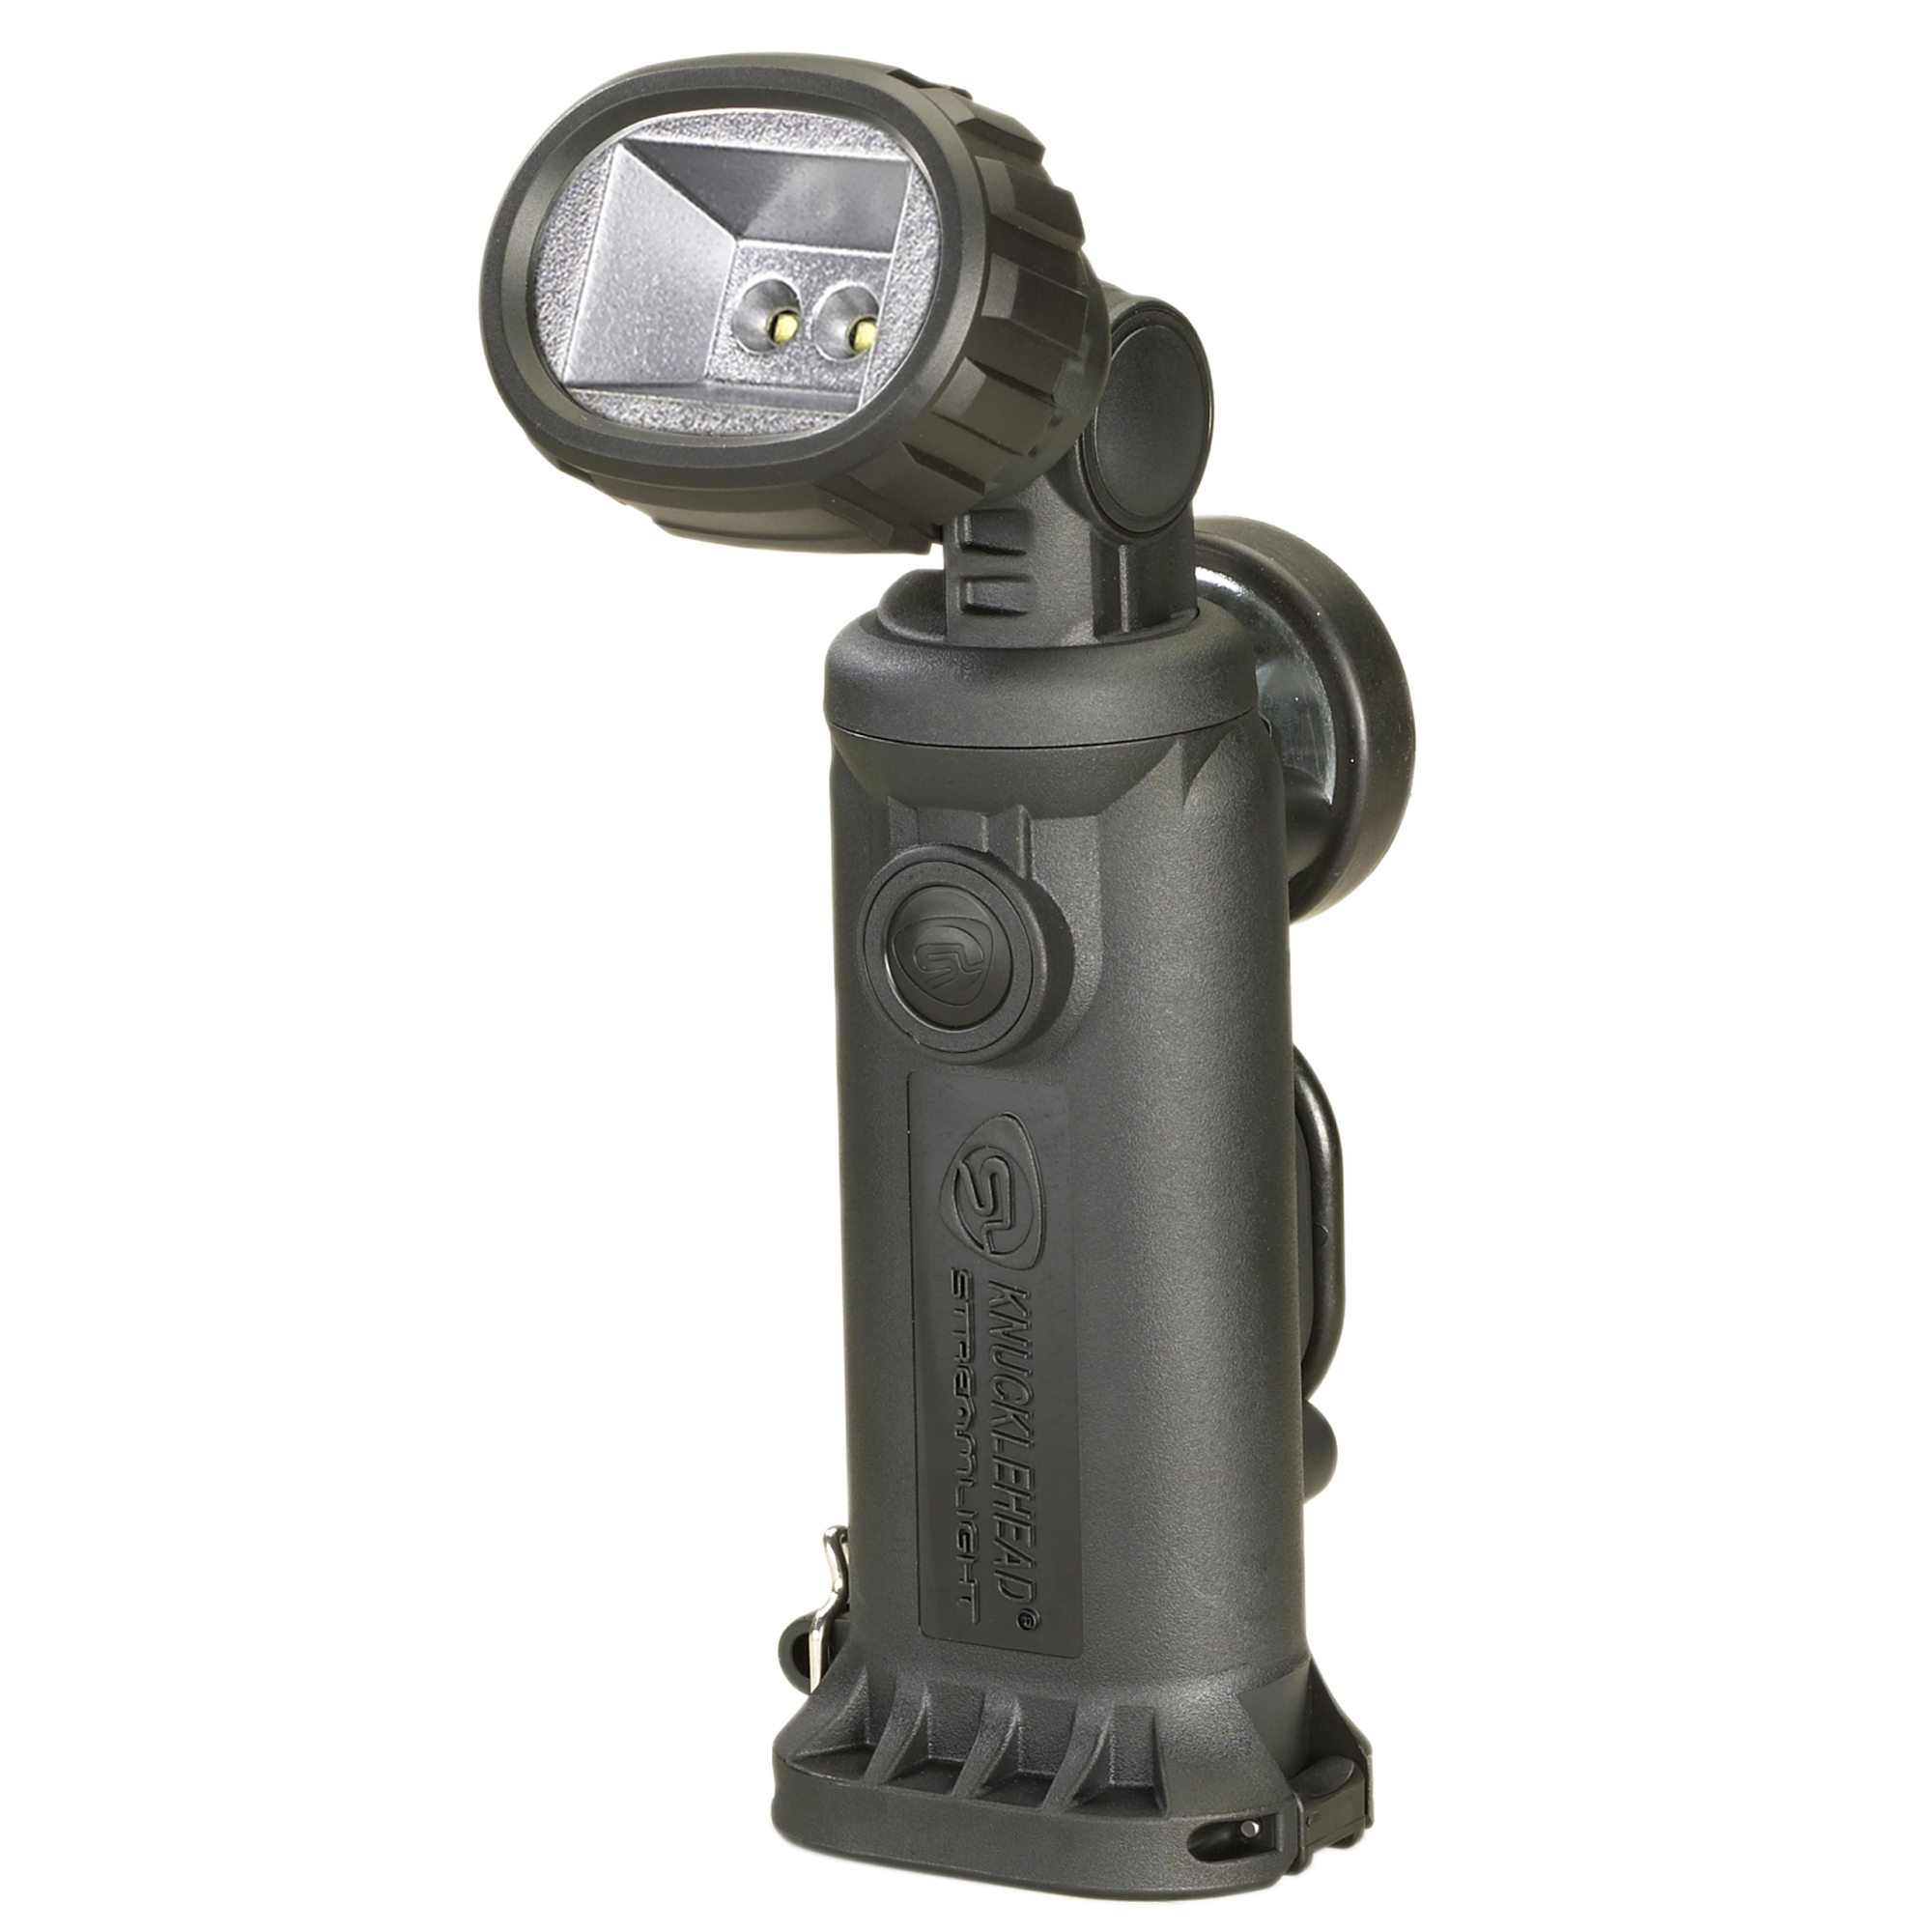 Streamlight Knucklehead Light with Charger Holder 120V AC Cord & DC Cord, Black by Streamlight